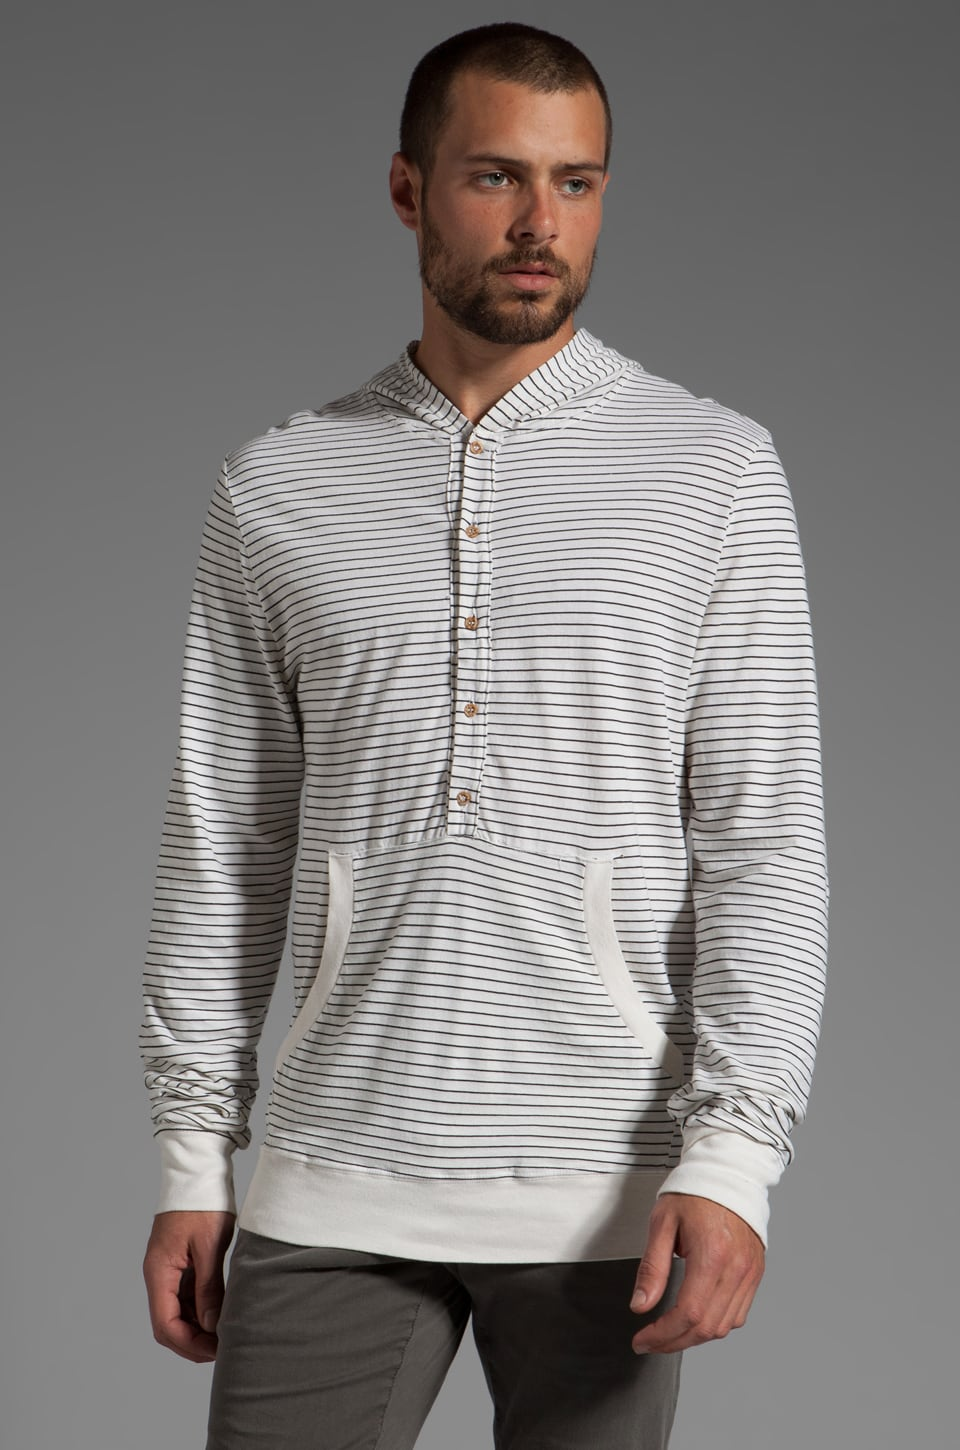 Cohesive & co. Herbert Printed Striped Hoodie in White